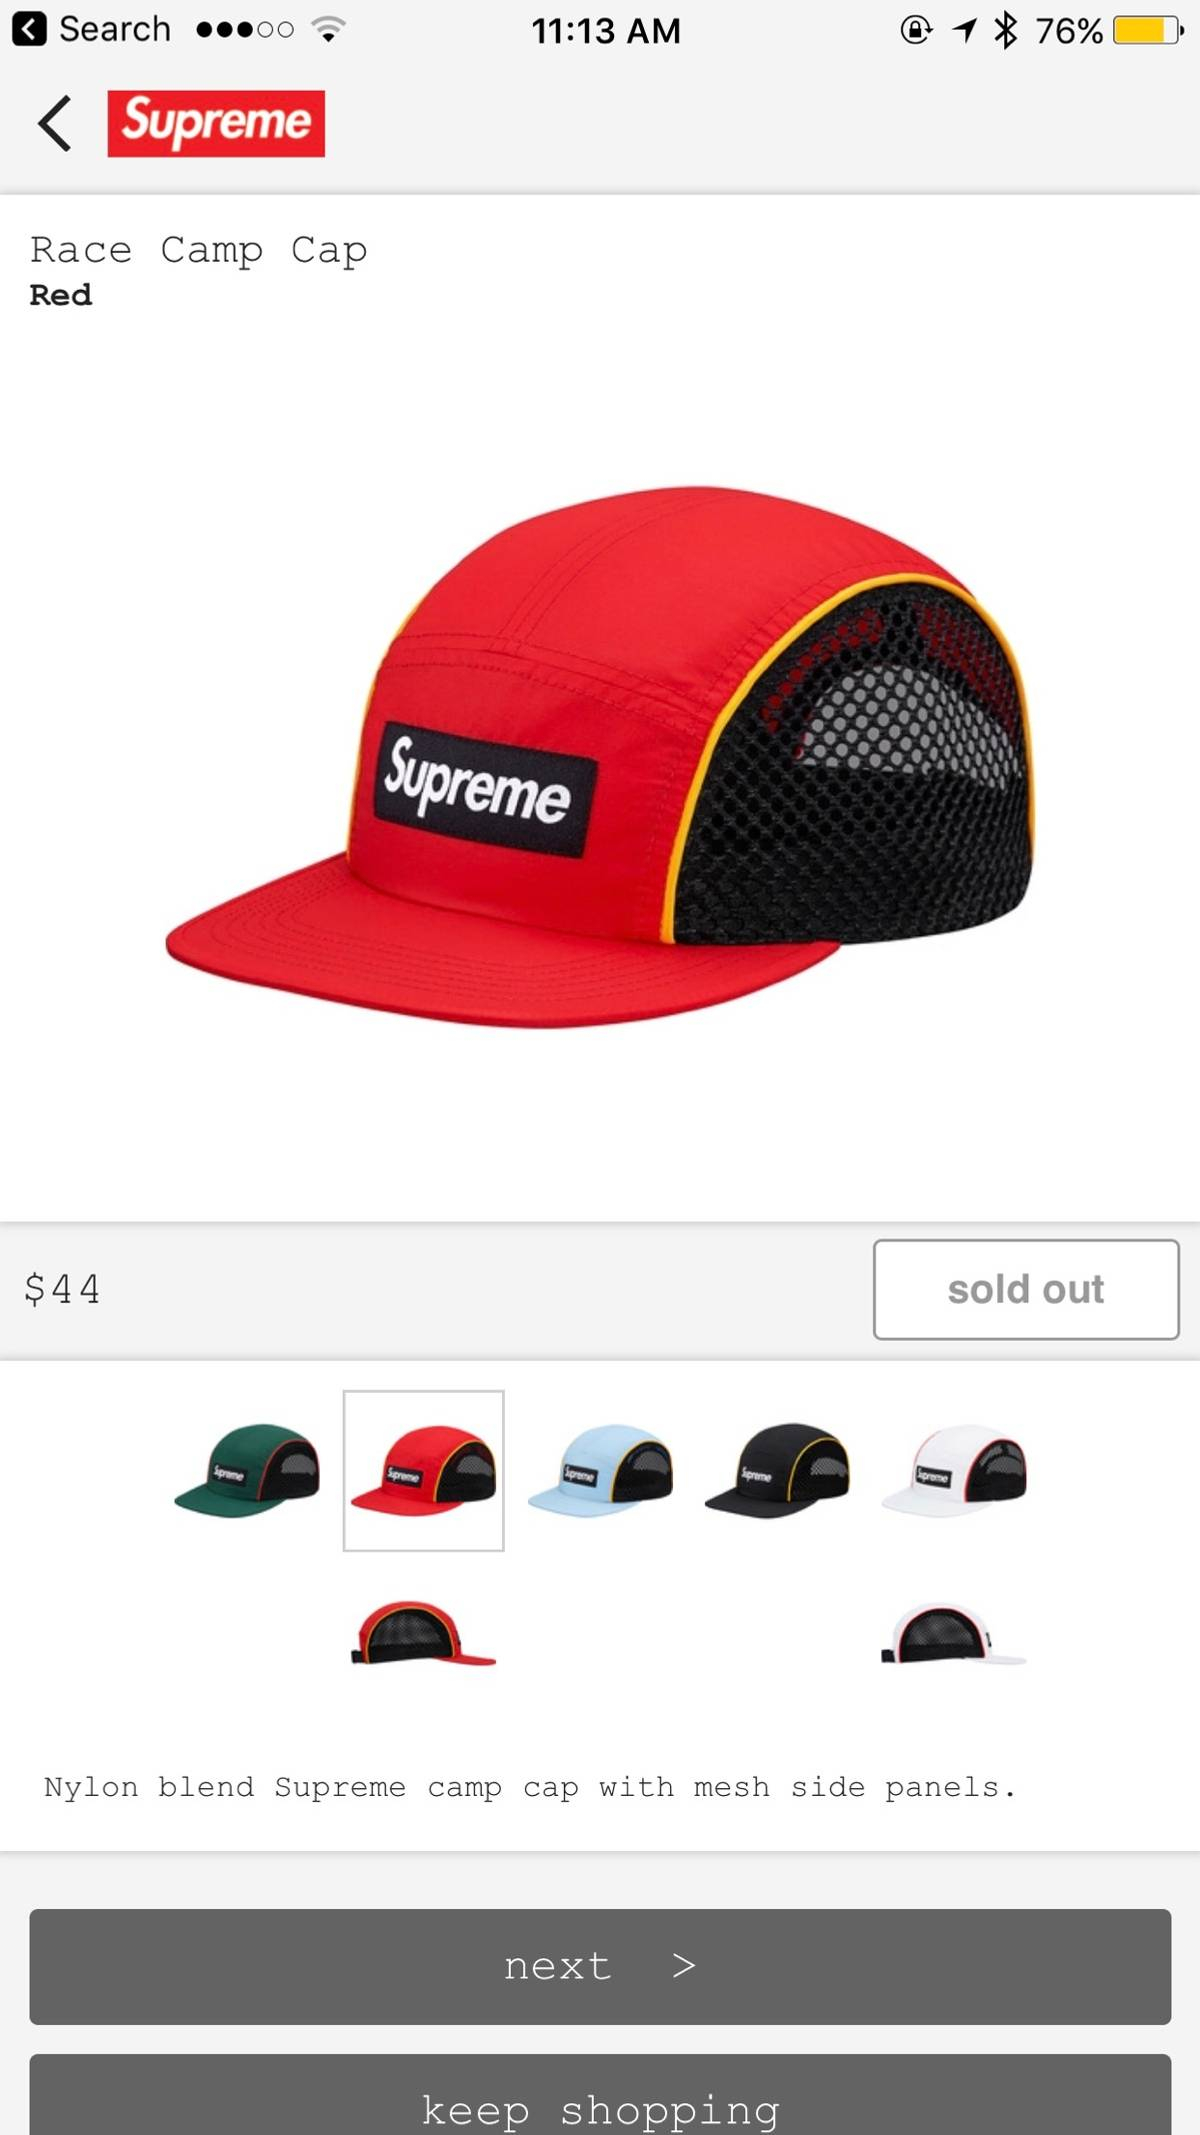 186b89e4 Supreme Lowest Price-ds Supreme Race Camp Cap-red | Grailed